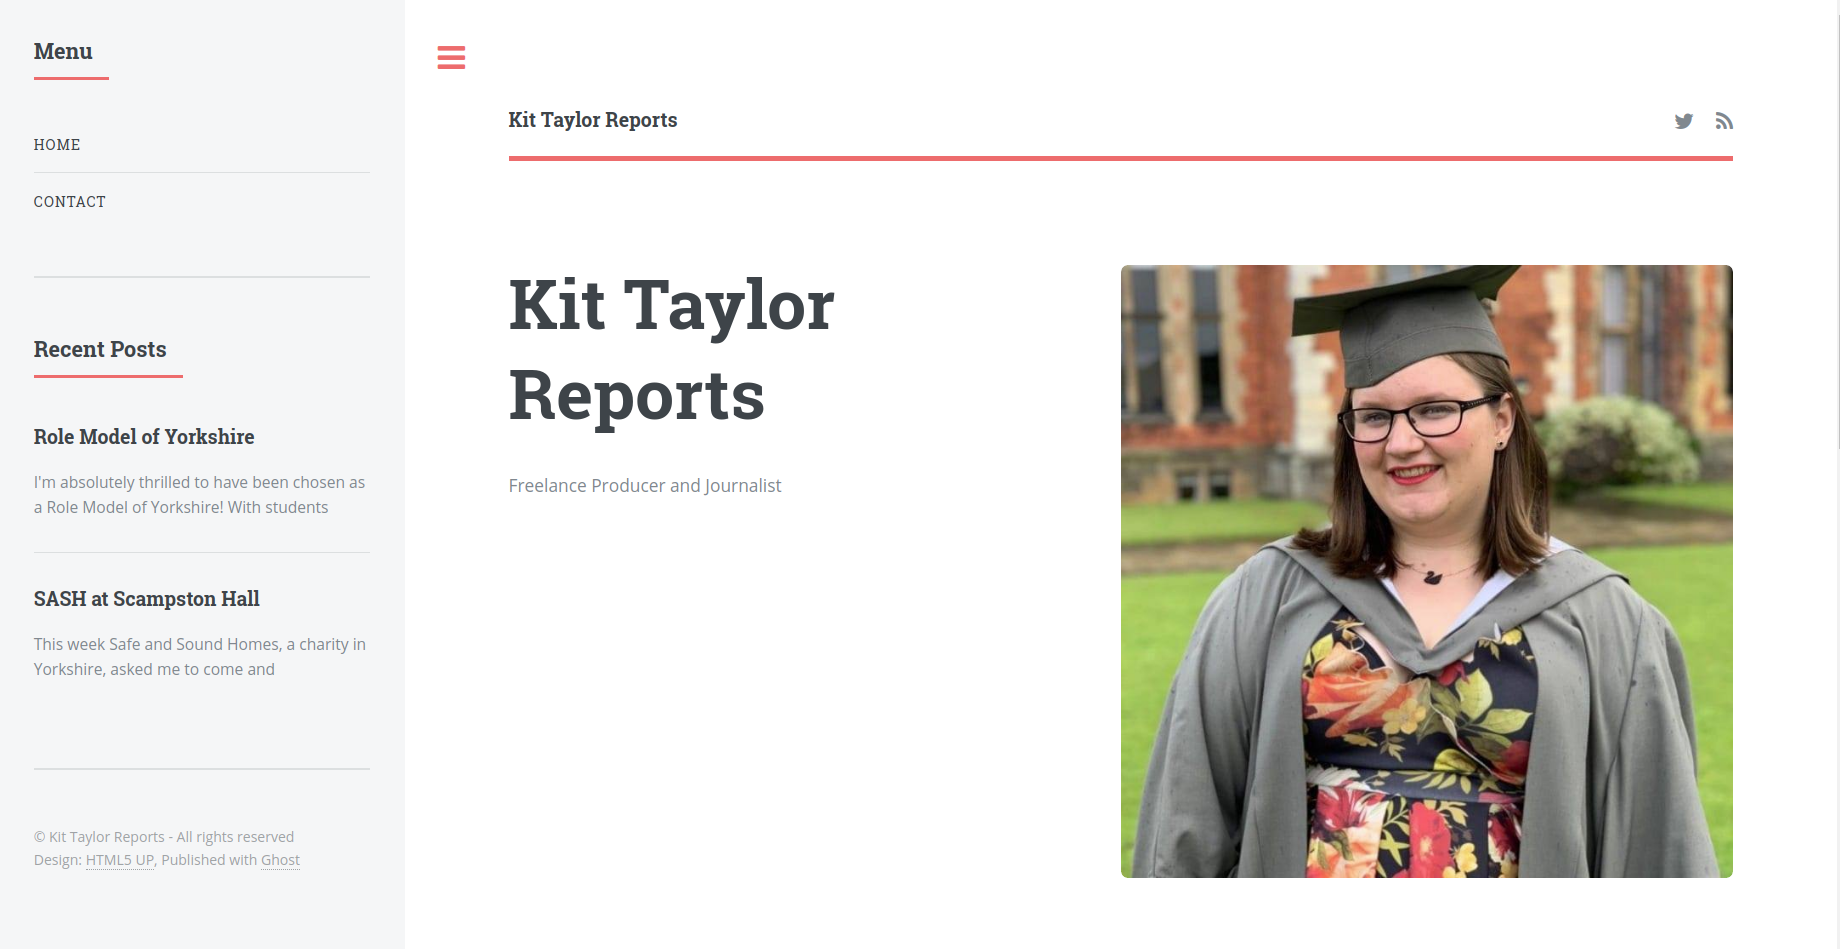 Kit Taylor Reports Homepage